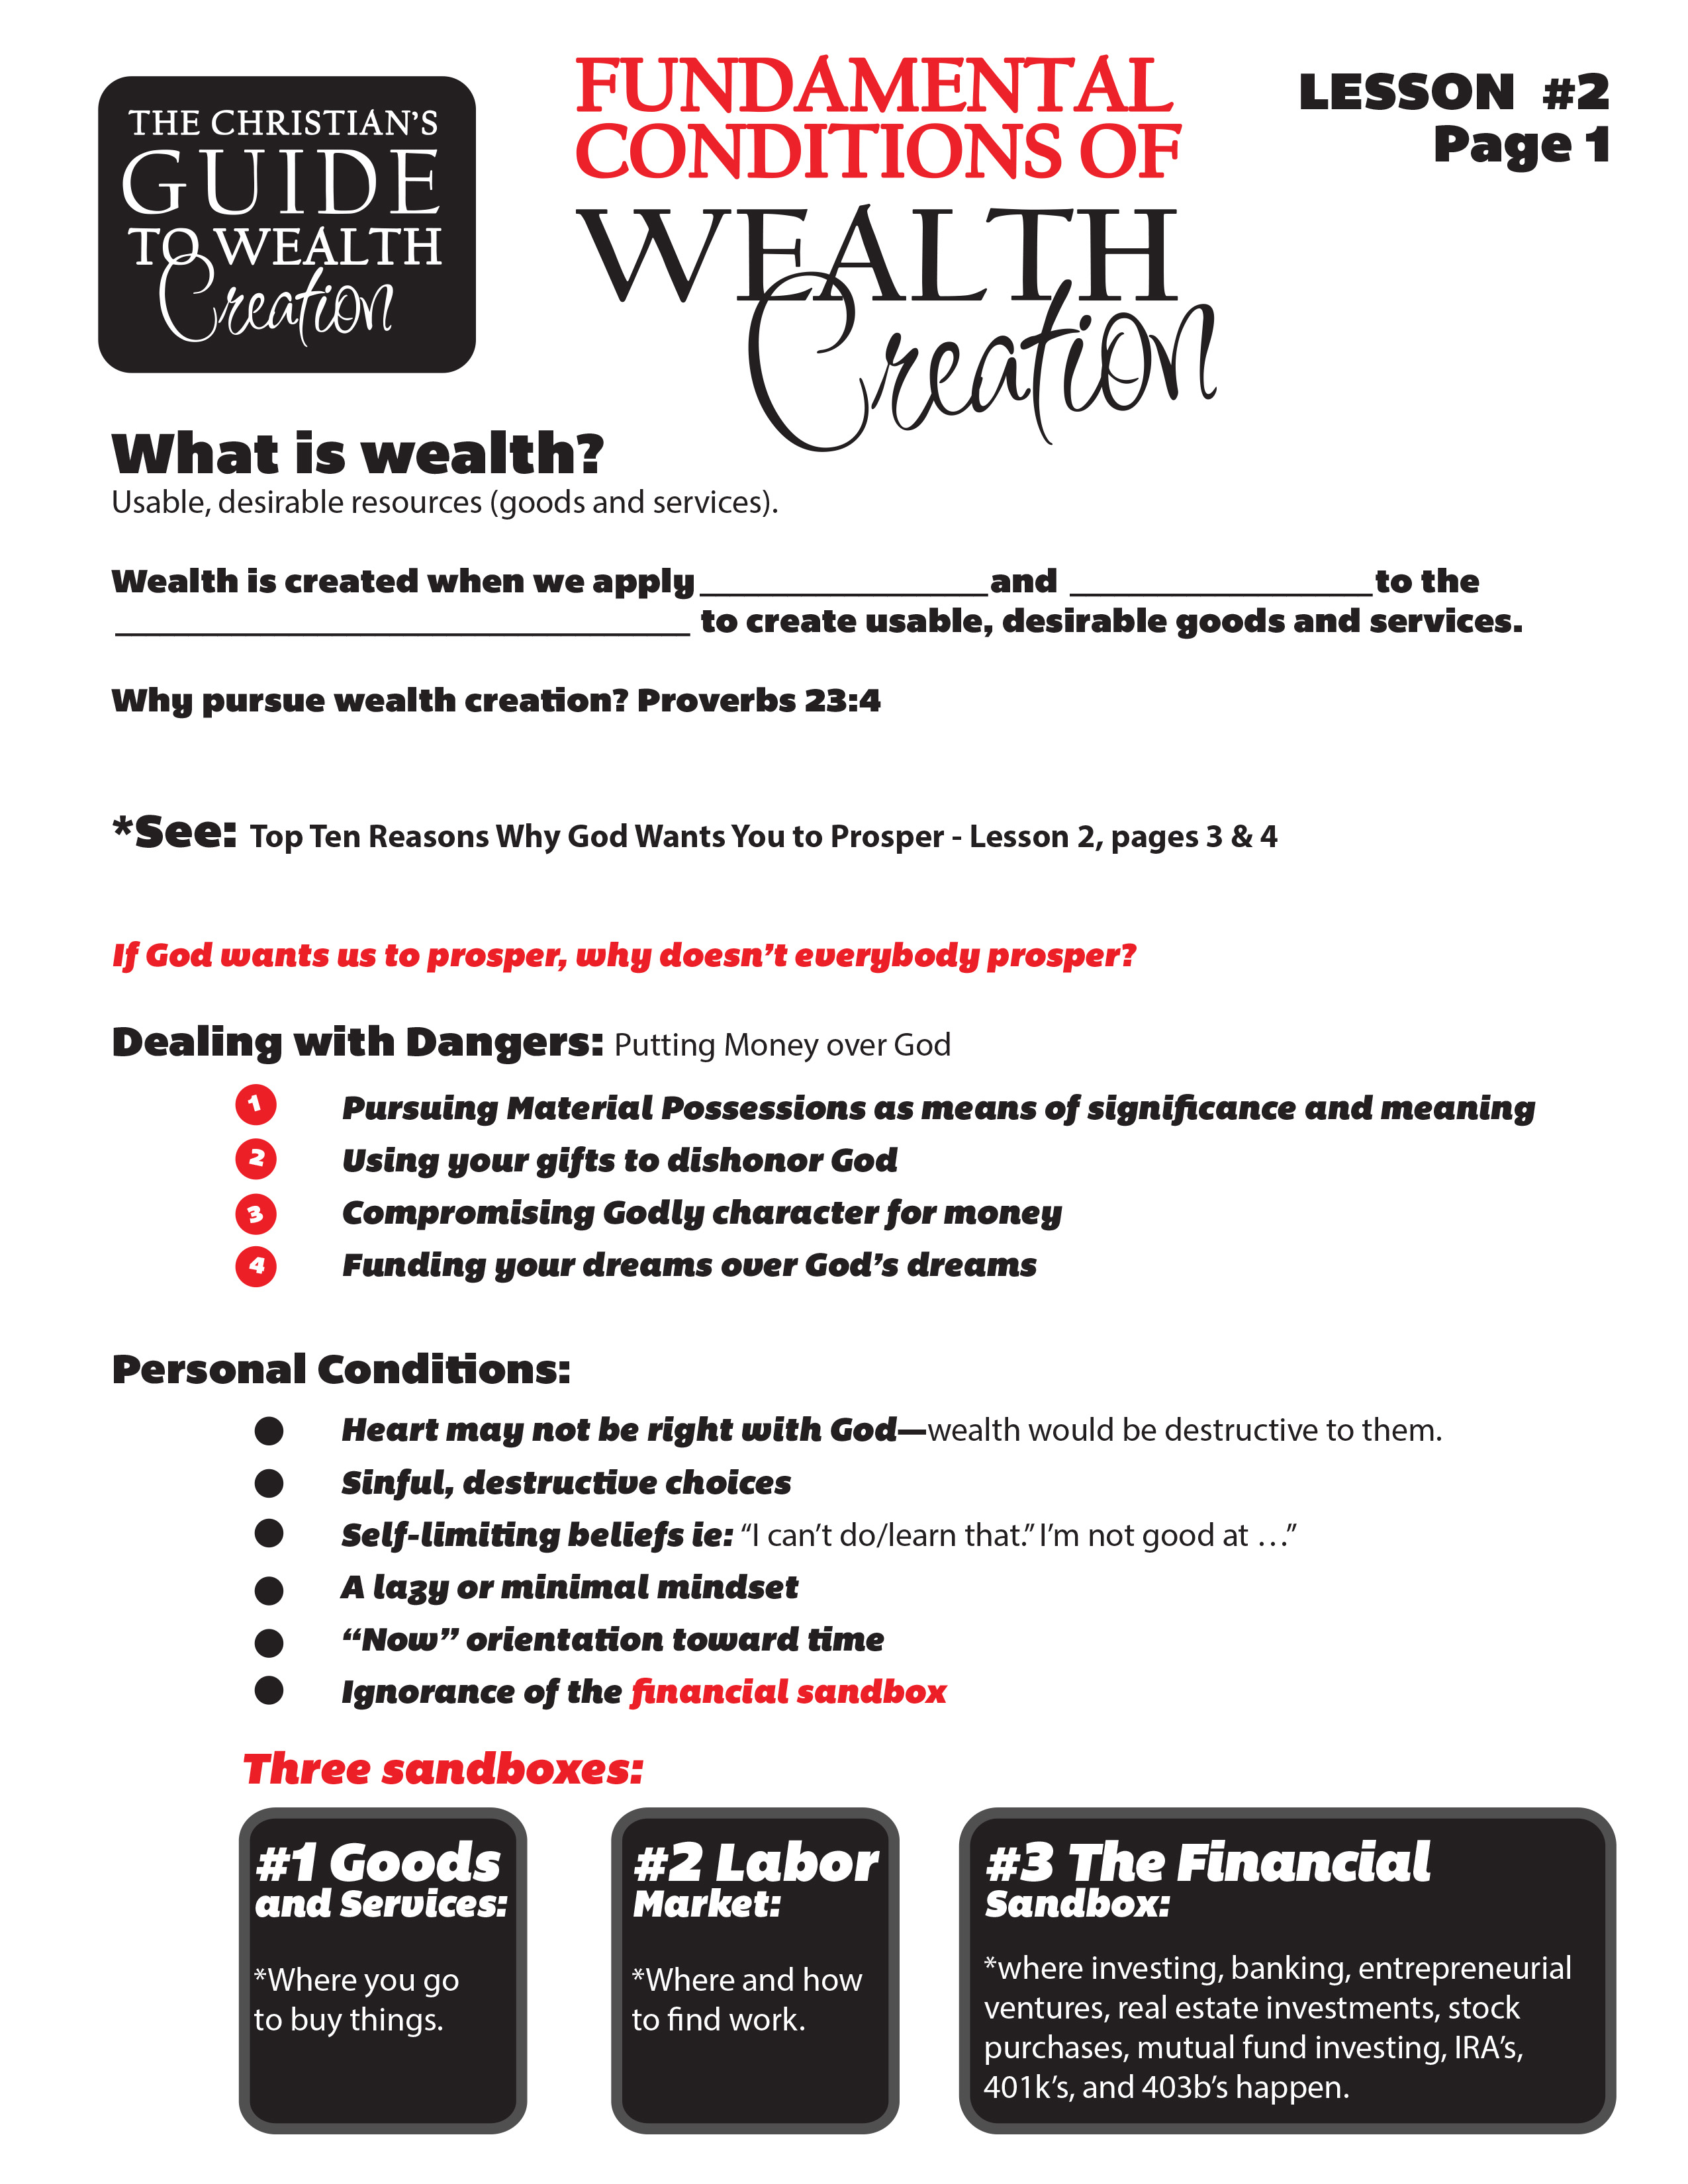 Lesson 2 Fundamentals of Wealth Creation page 1.jpg